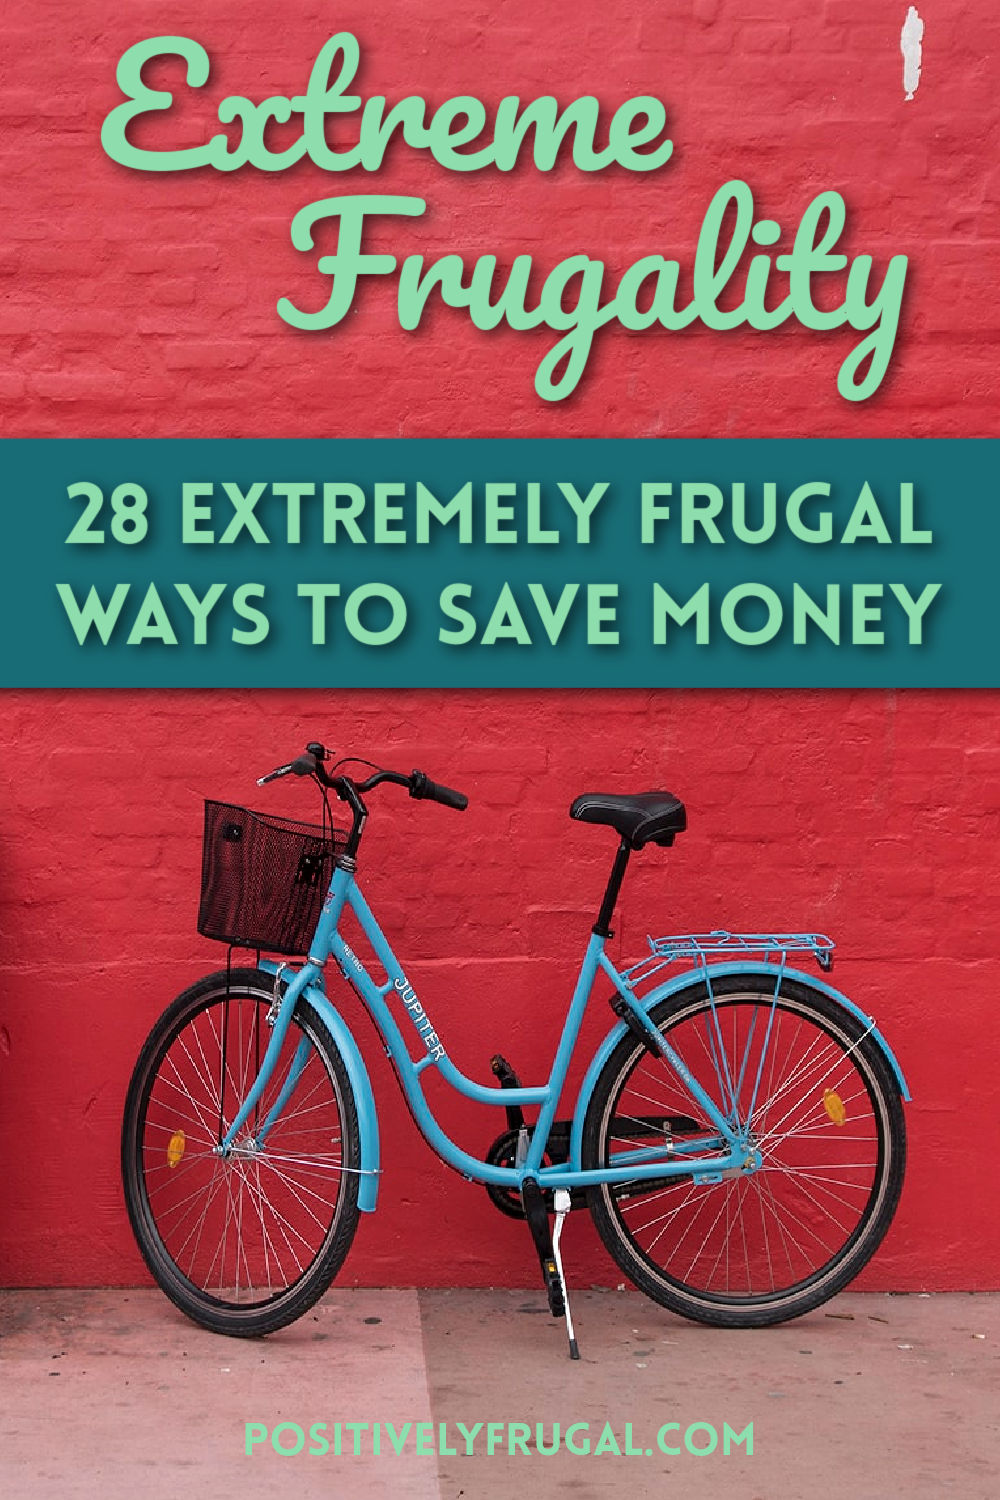 Extremely Frugal Ways to Save Money by PositivelyFrugal.com